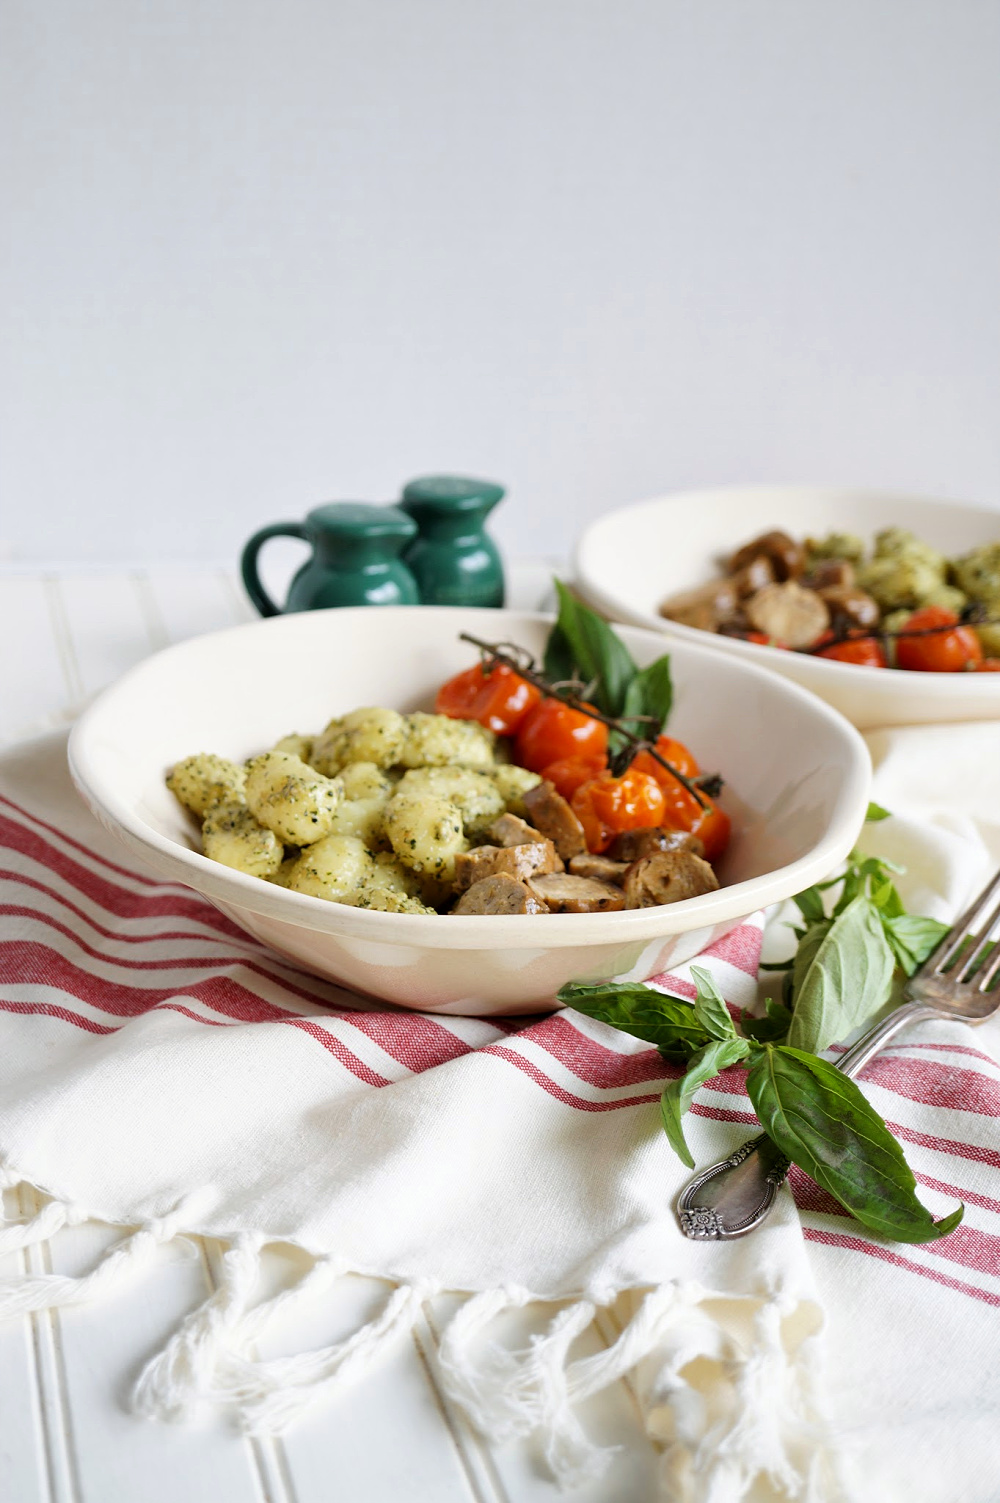 plate of gnocchi with pesto, sausage, and tomatoes